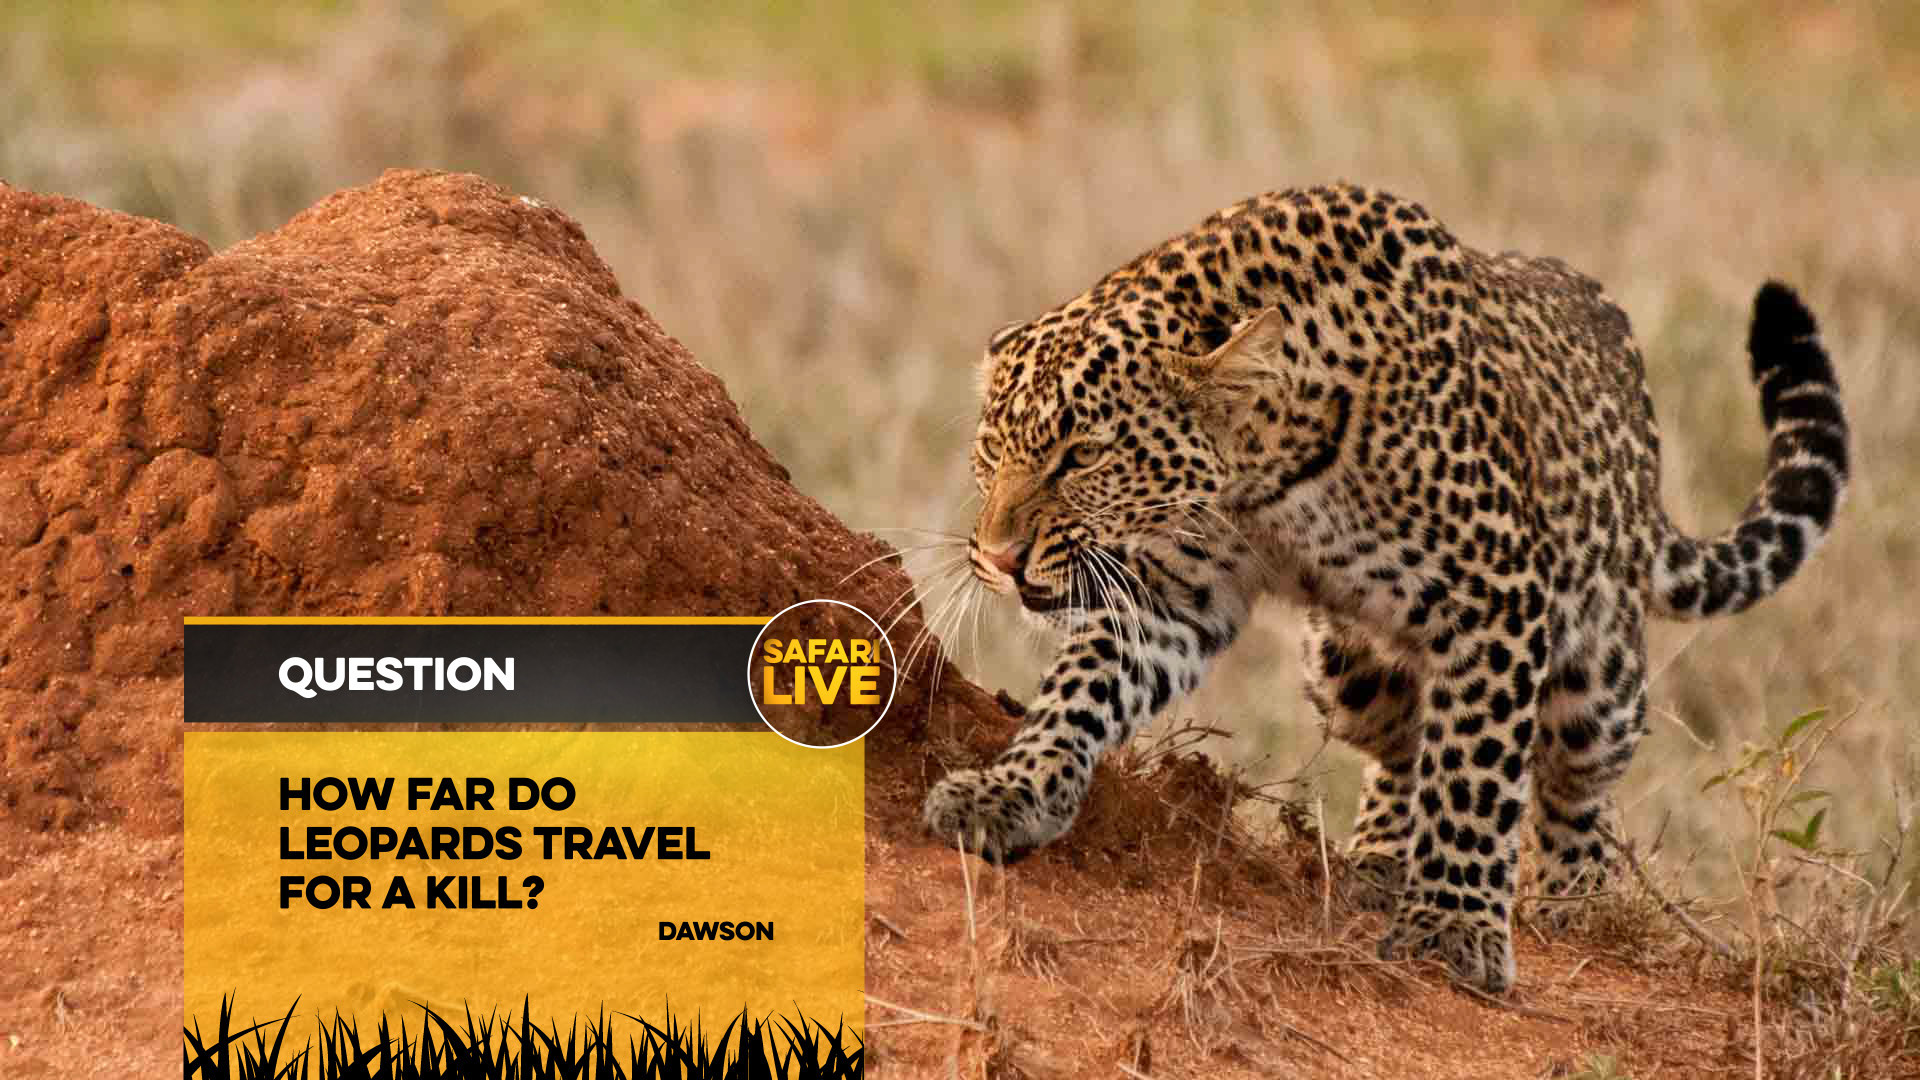 NAT_GEO_SAFARI_LIVE_QUESTION_BACKPLATES_15TH_NOV_17-2